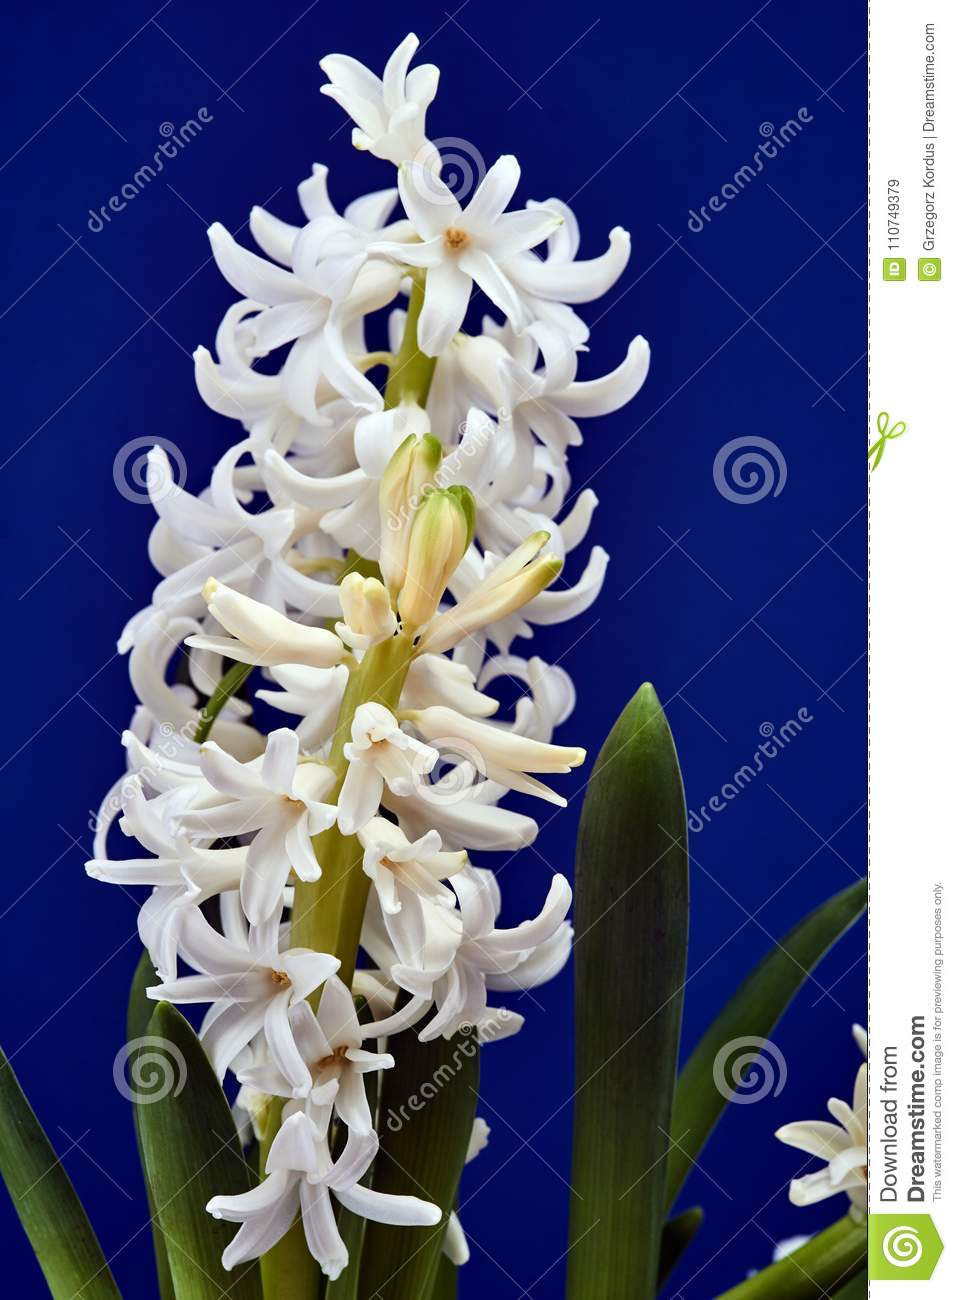 Details of a bouquet of flowers hyacinth stock image image of download details of a bouquet of flowers hyacinth stock image image of flora poland izmirmasajfo